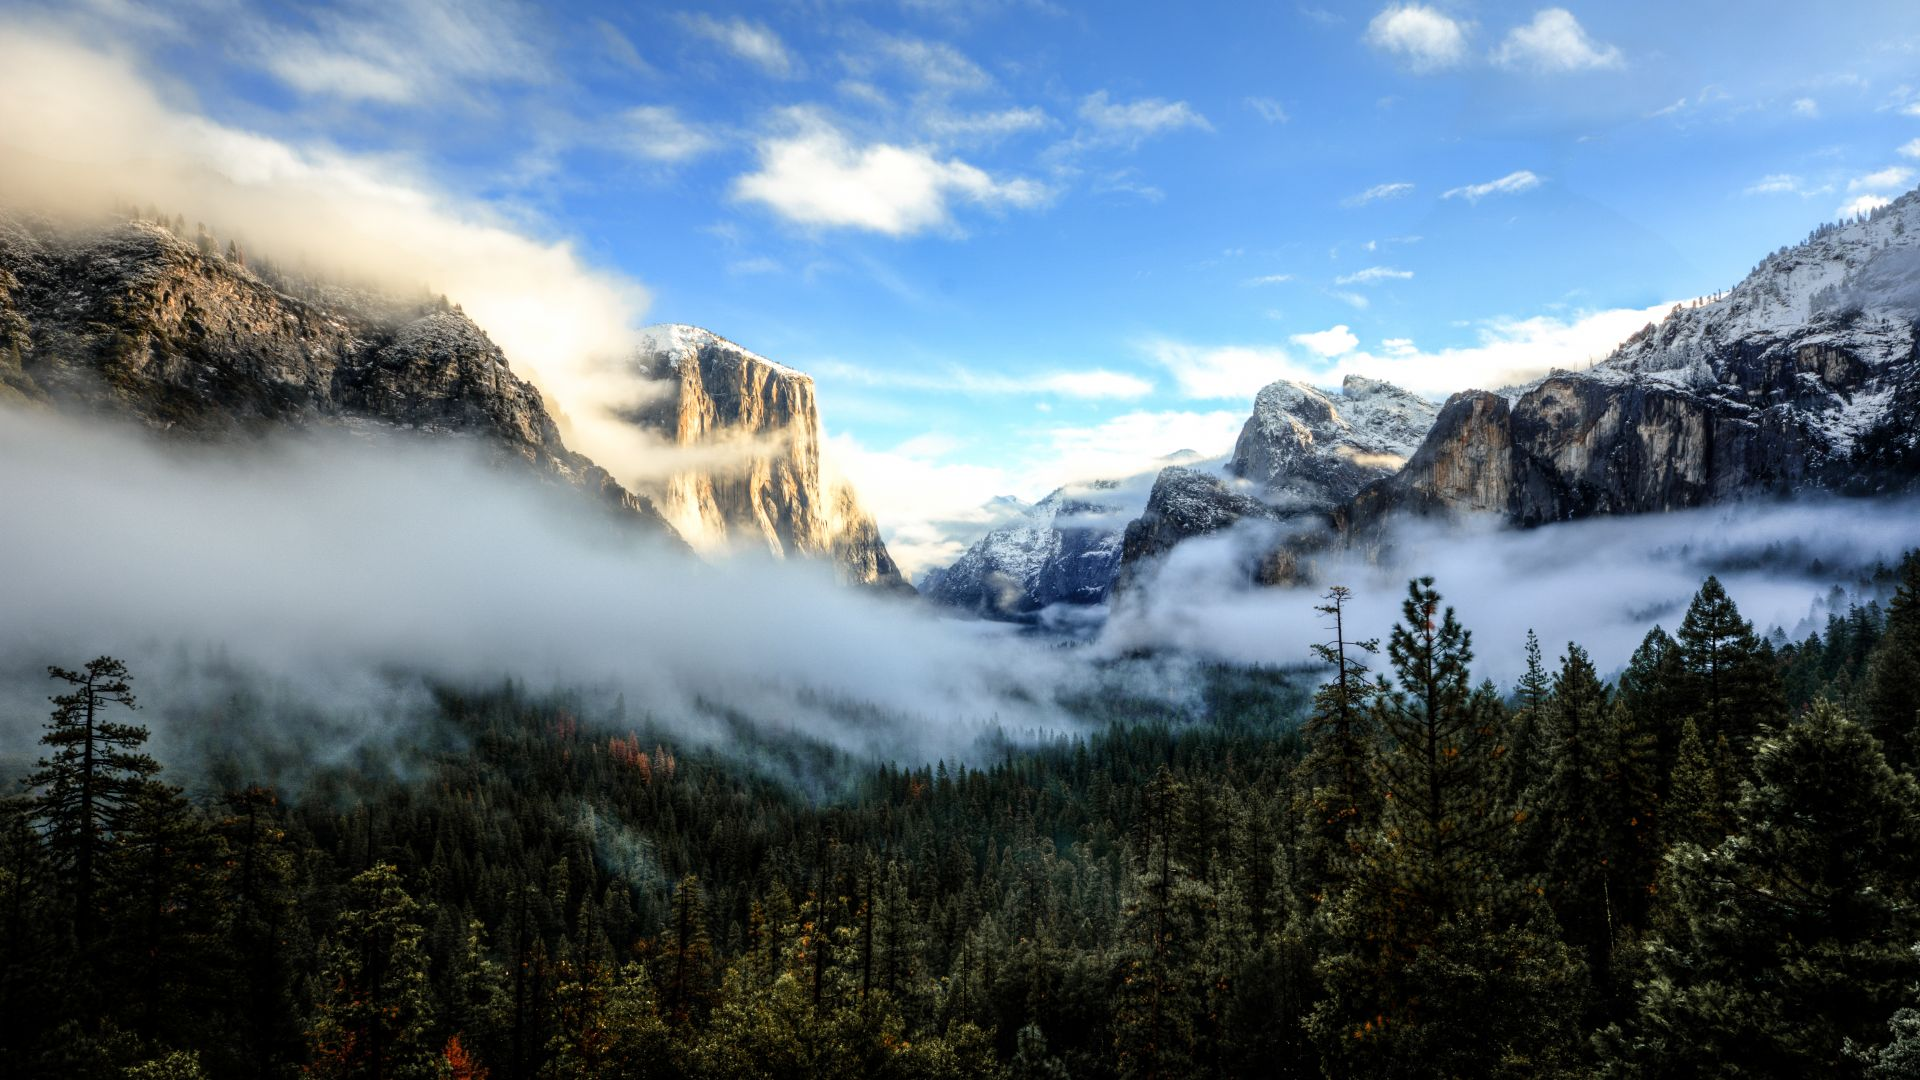 Tunnel View, Yosemite, CA, Sunset, mountains, clouds, pines